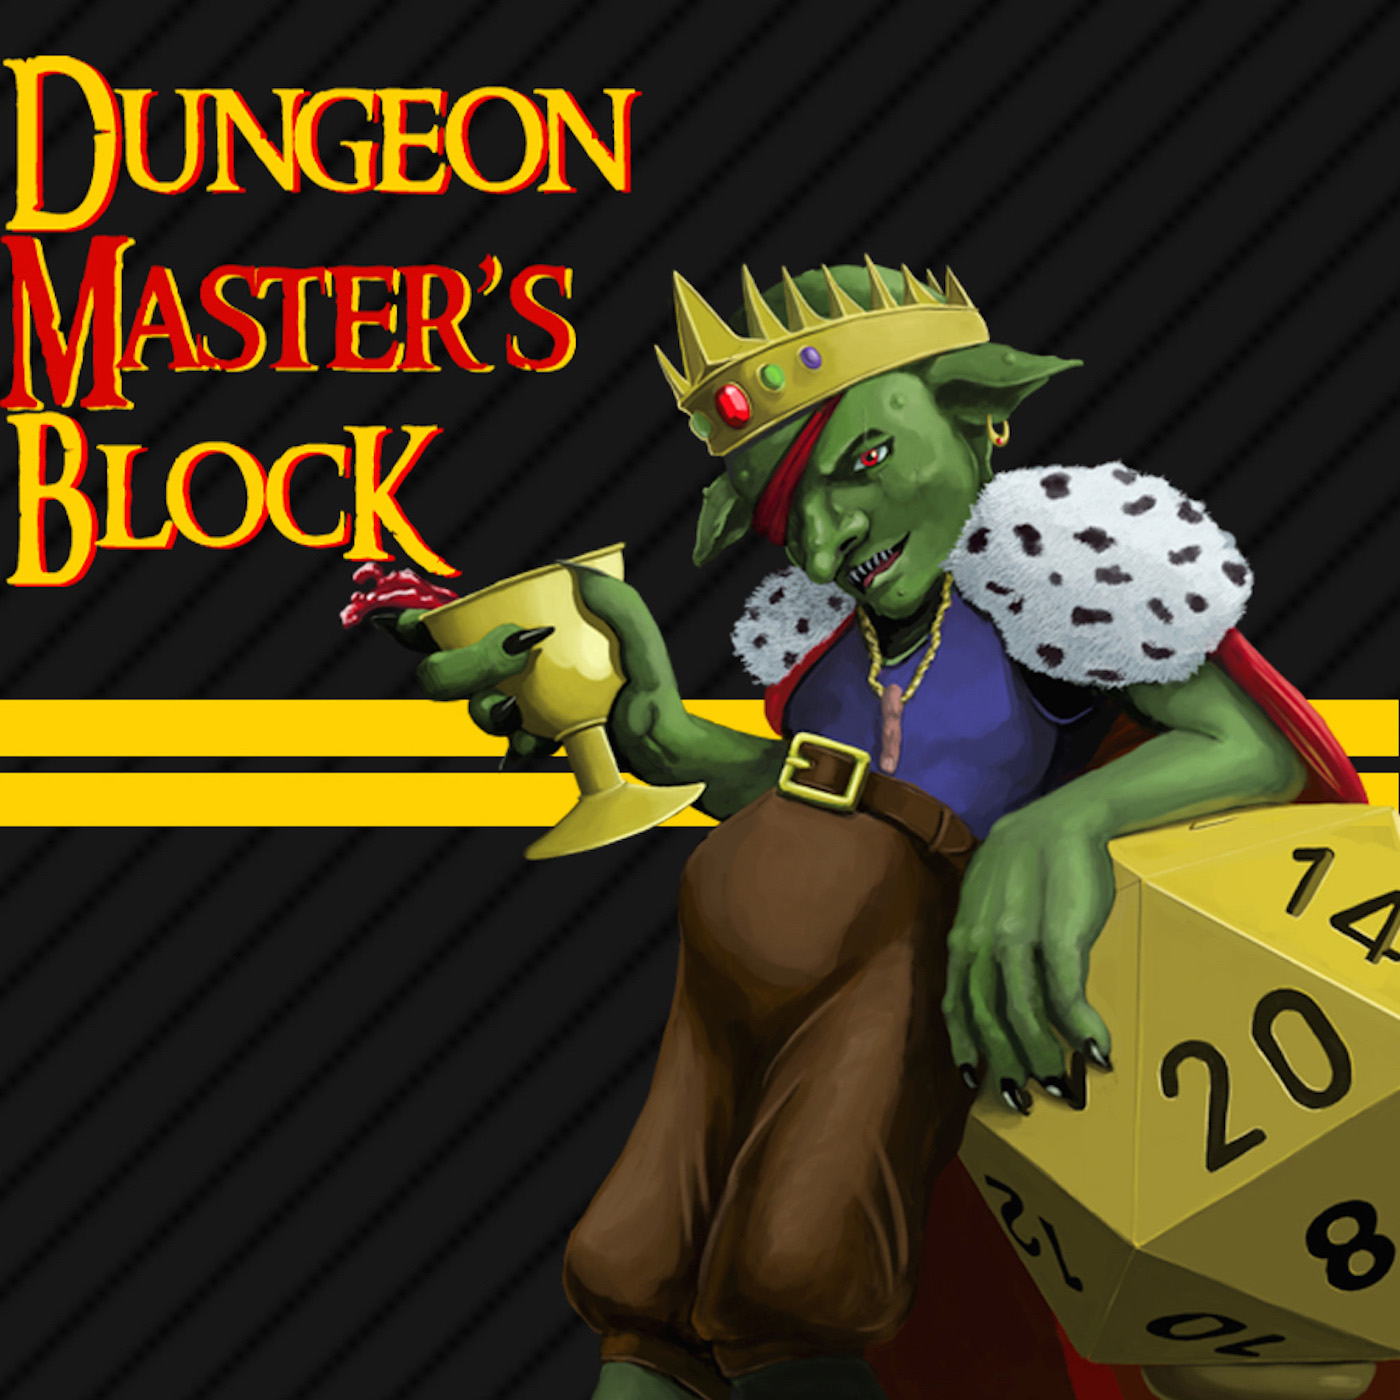 Dungeon Master's Block